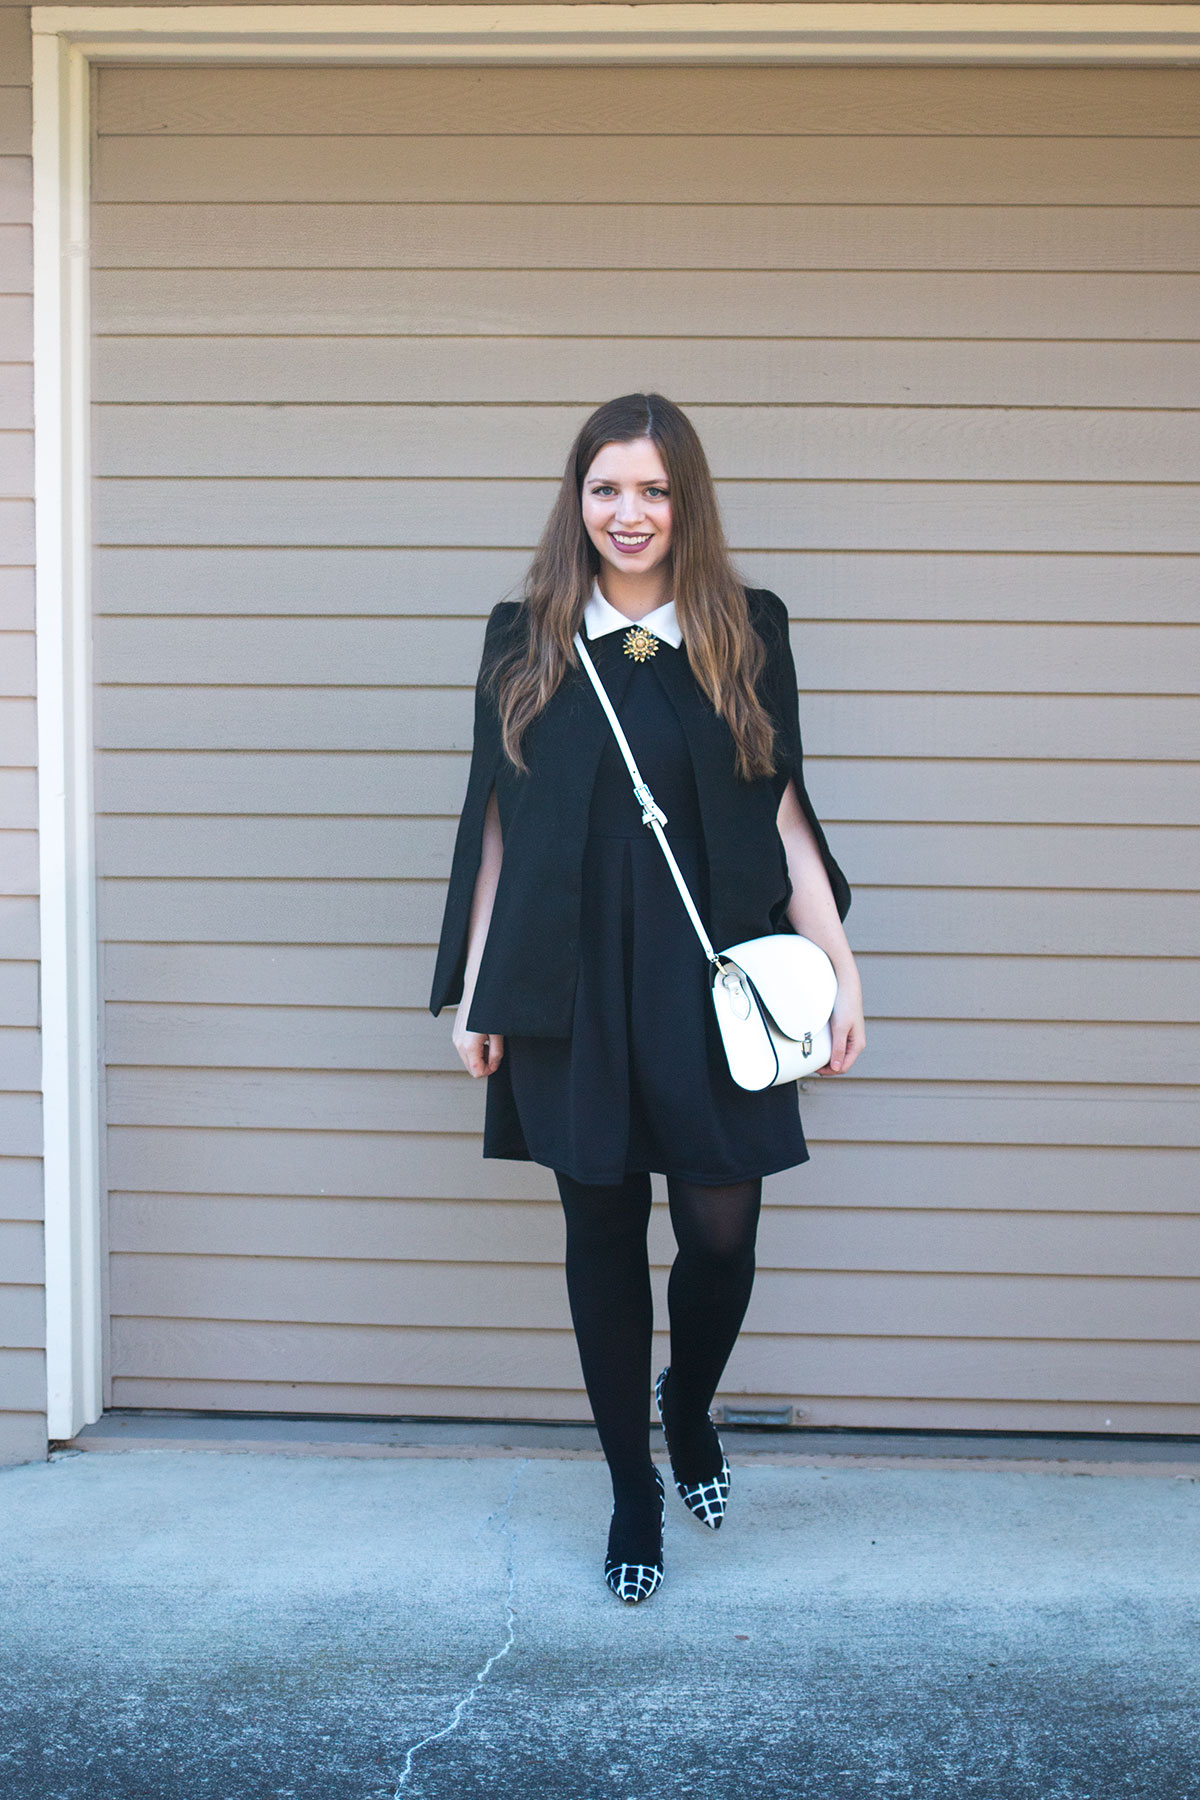 Black Cape with Collared Dress & White Accessories Outfit // hellorigby.com seattle fashion blog